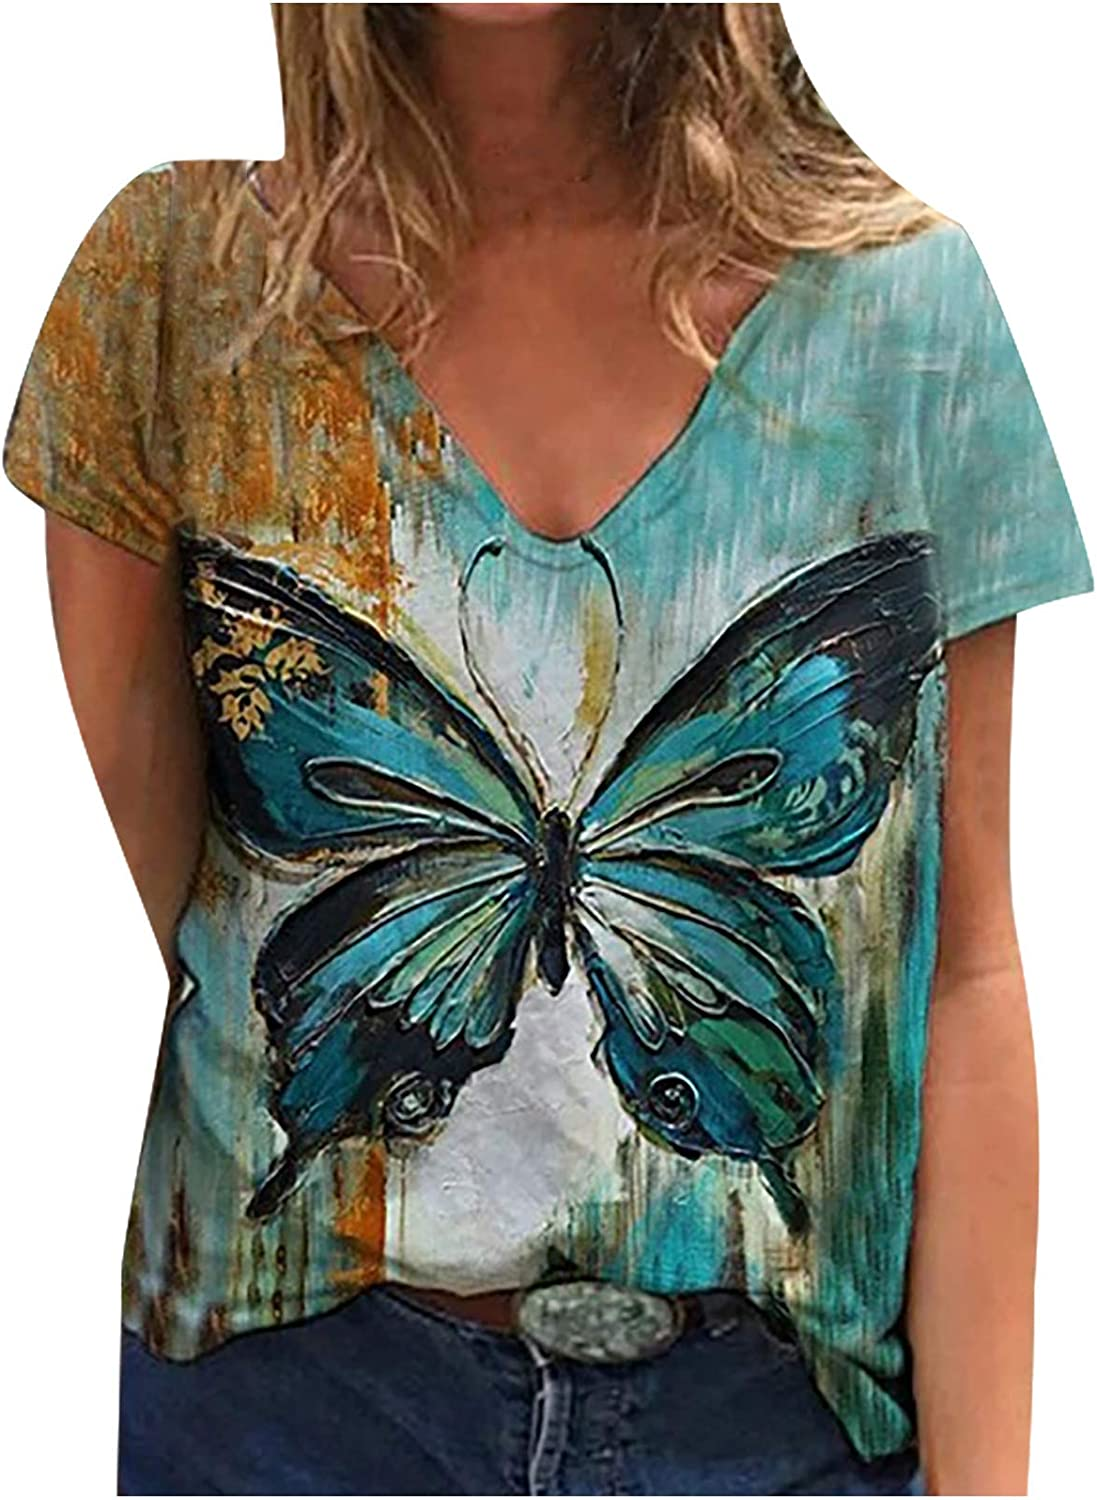 Women Graphic Shirts Award Butterfly Blouse Casual Sl Free shipping New Print Short Tops